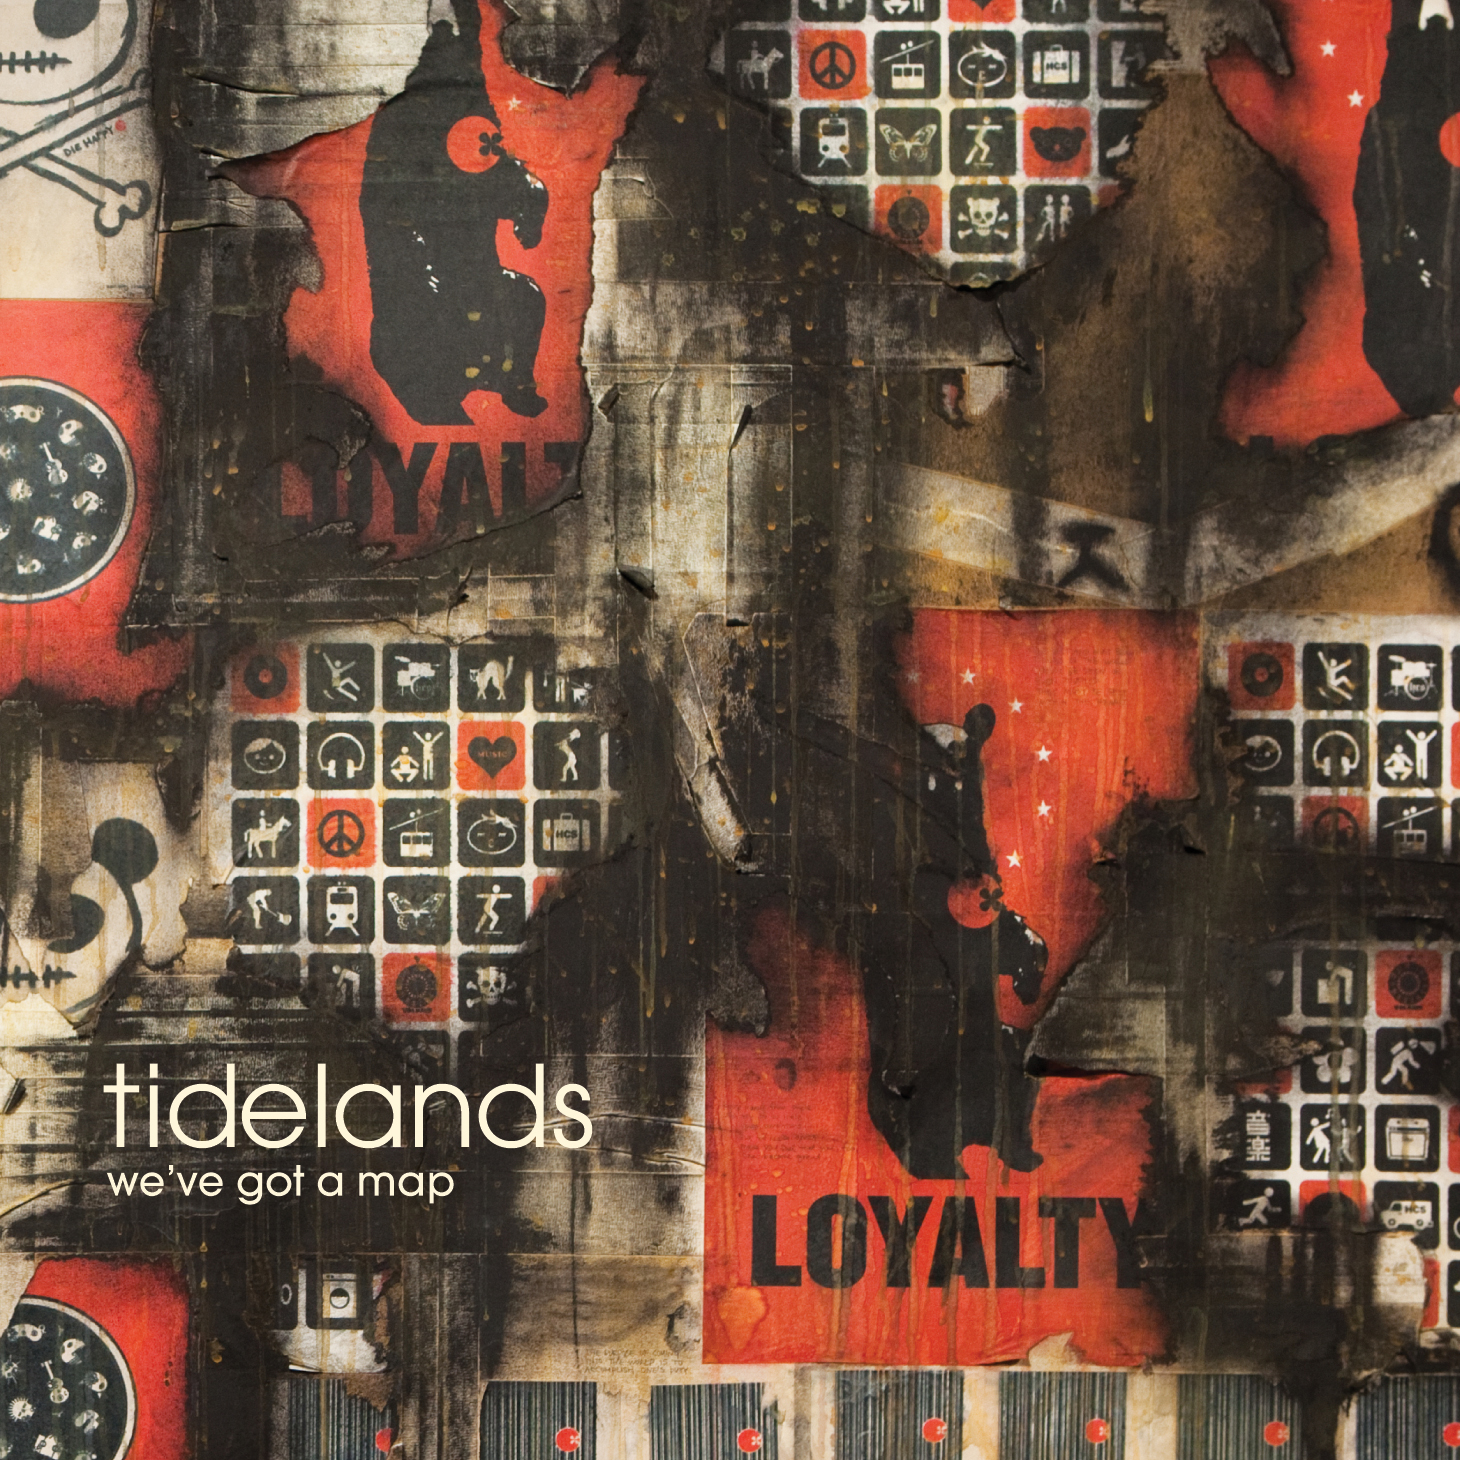 Tidelands - We've Got A Map